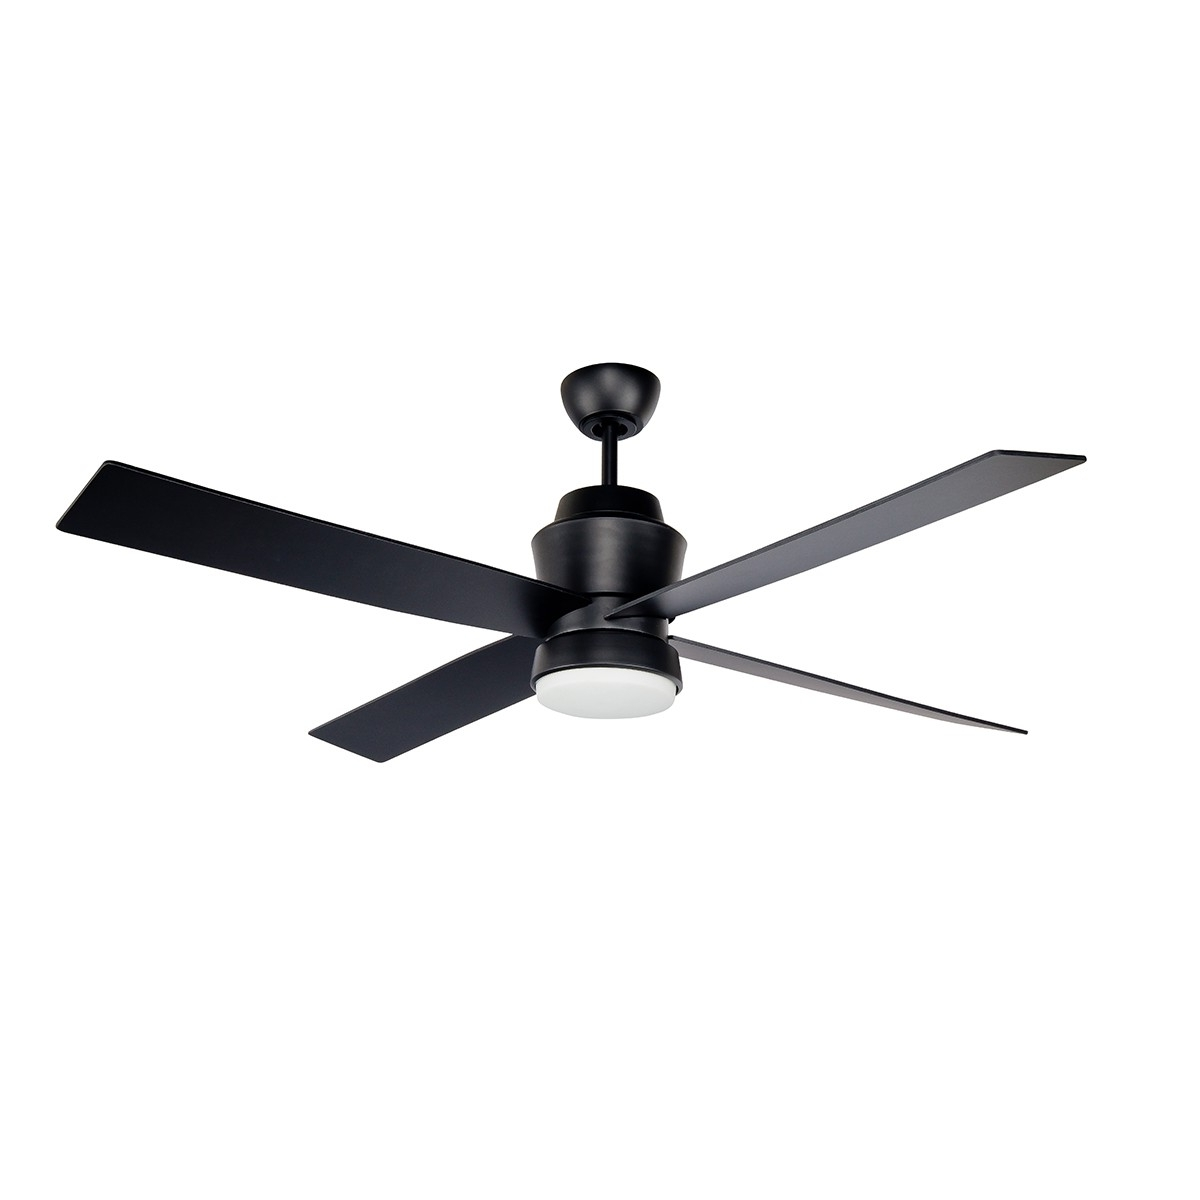 Modern Outdoor Ceiling Fans Regarding Latest Prologue Outdoor Ceiling Fan :: Stori Modern (View 5 of 20)